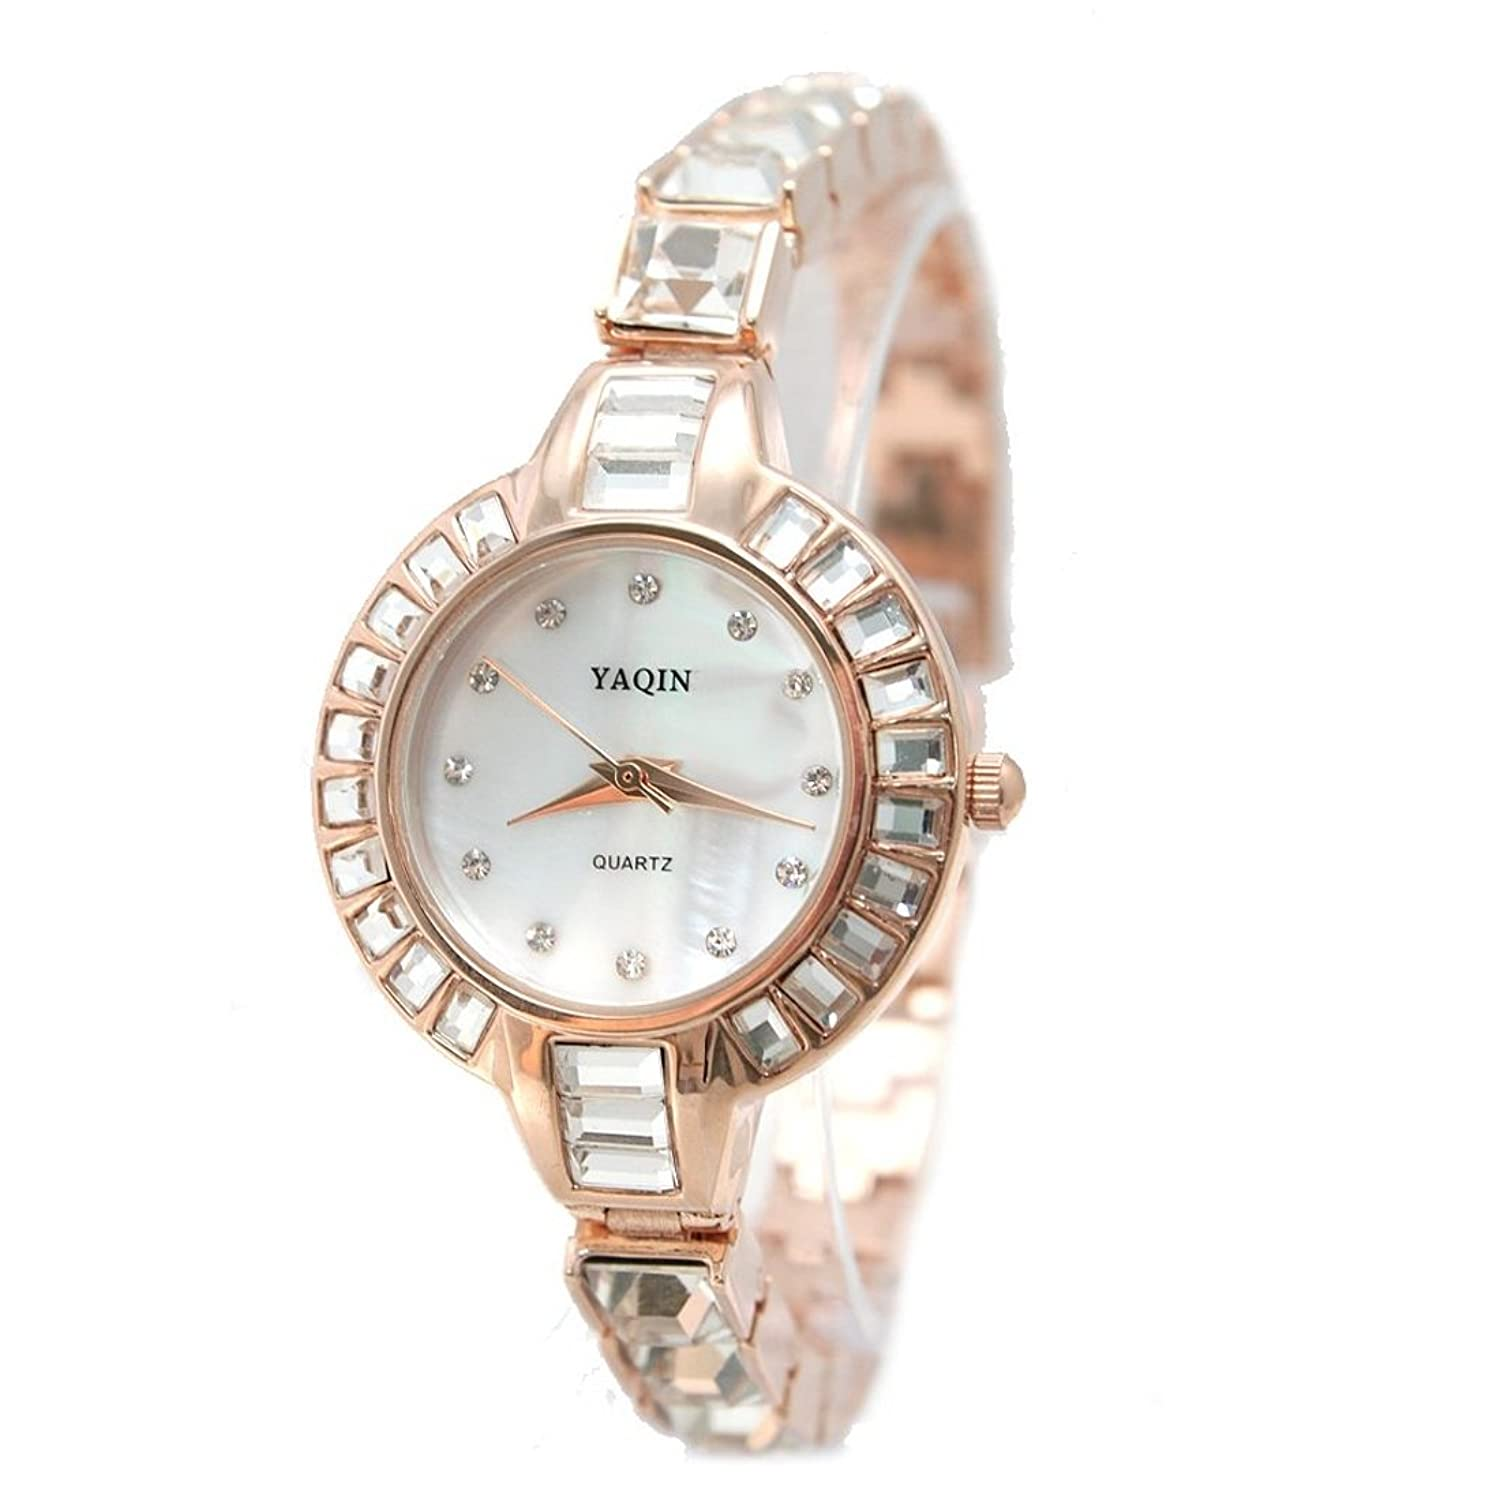 USFW864A New Round Rose Gold Tone Watchcase White Dial Ladies Women Bracelet Watch